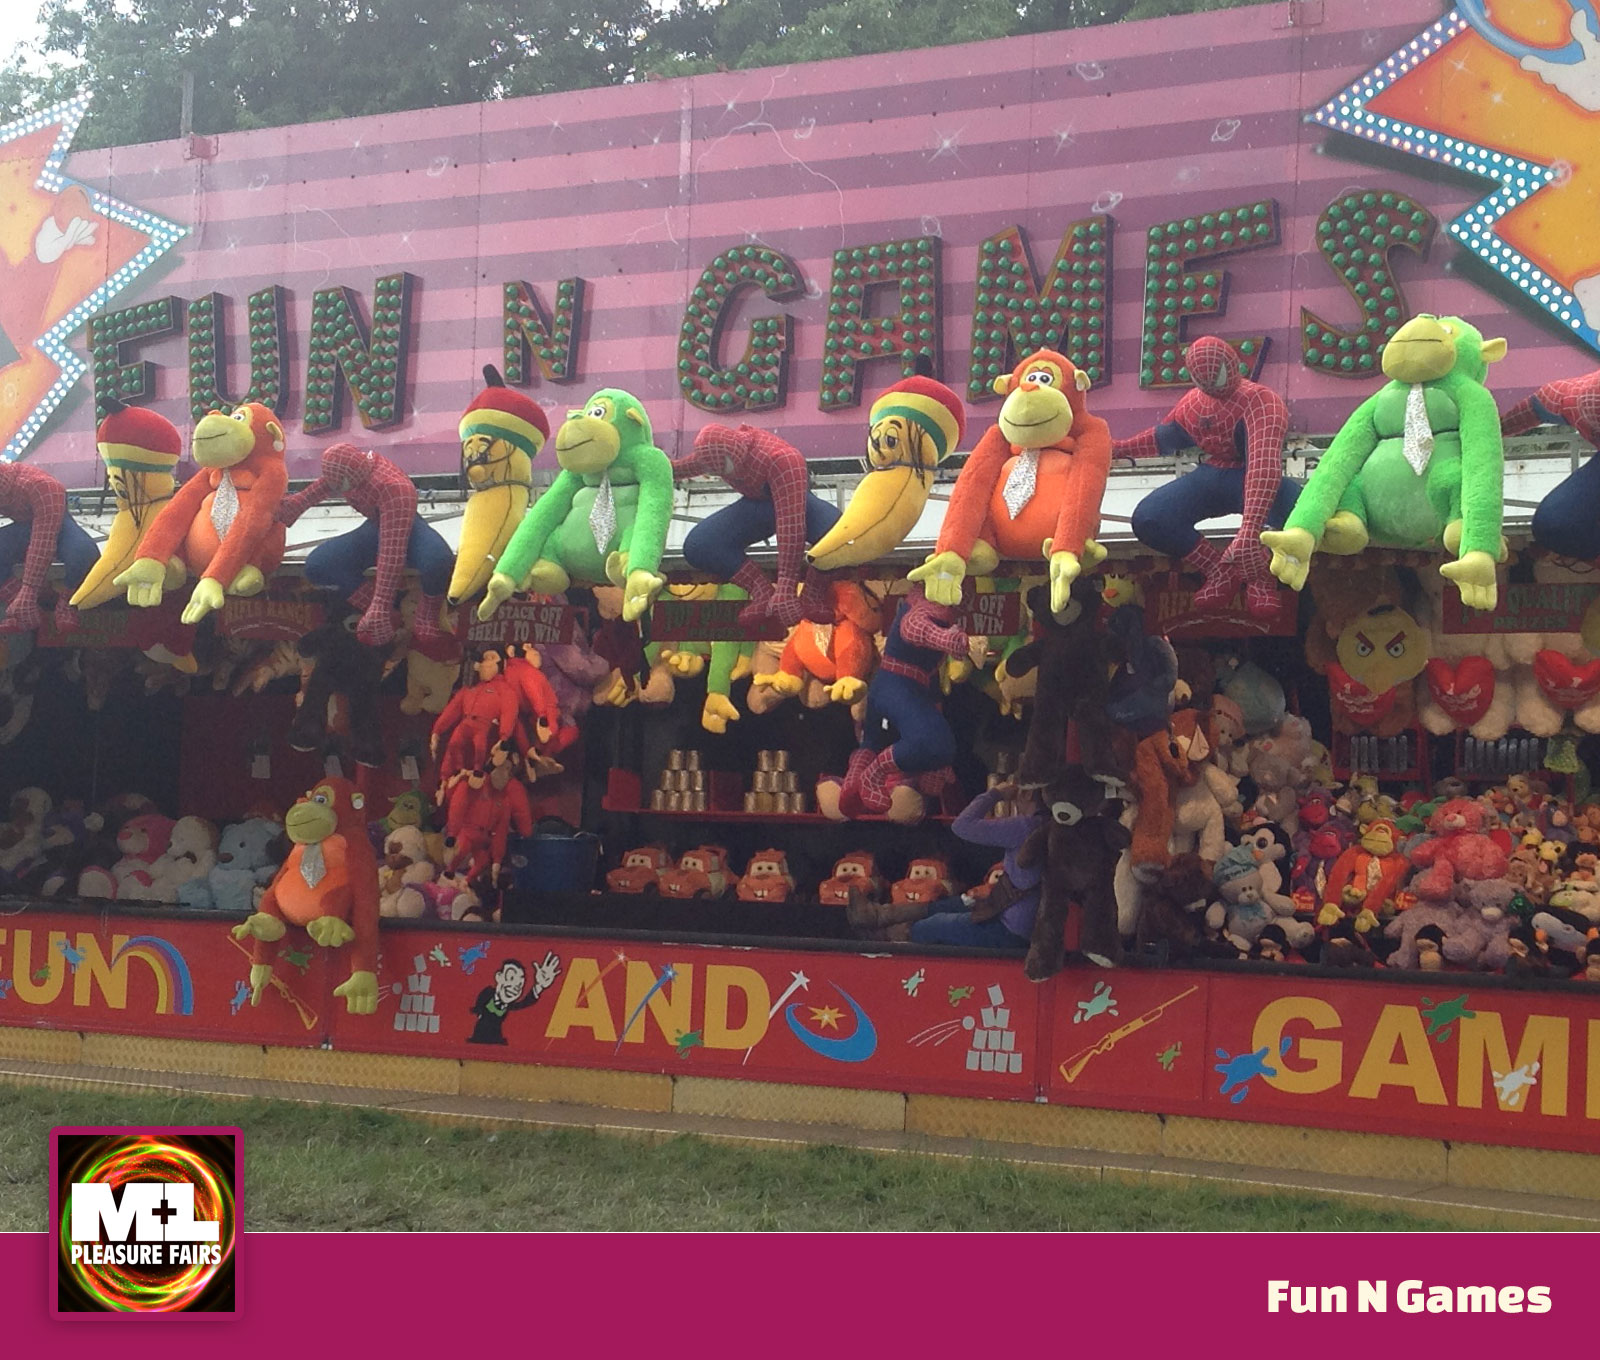 Fun N Games Stand Image